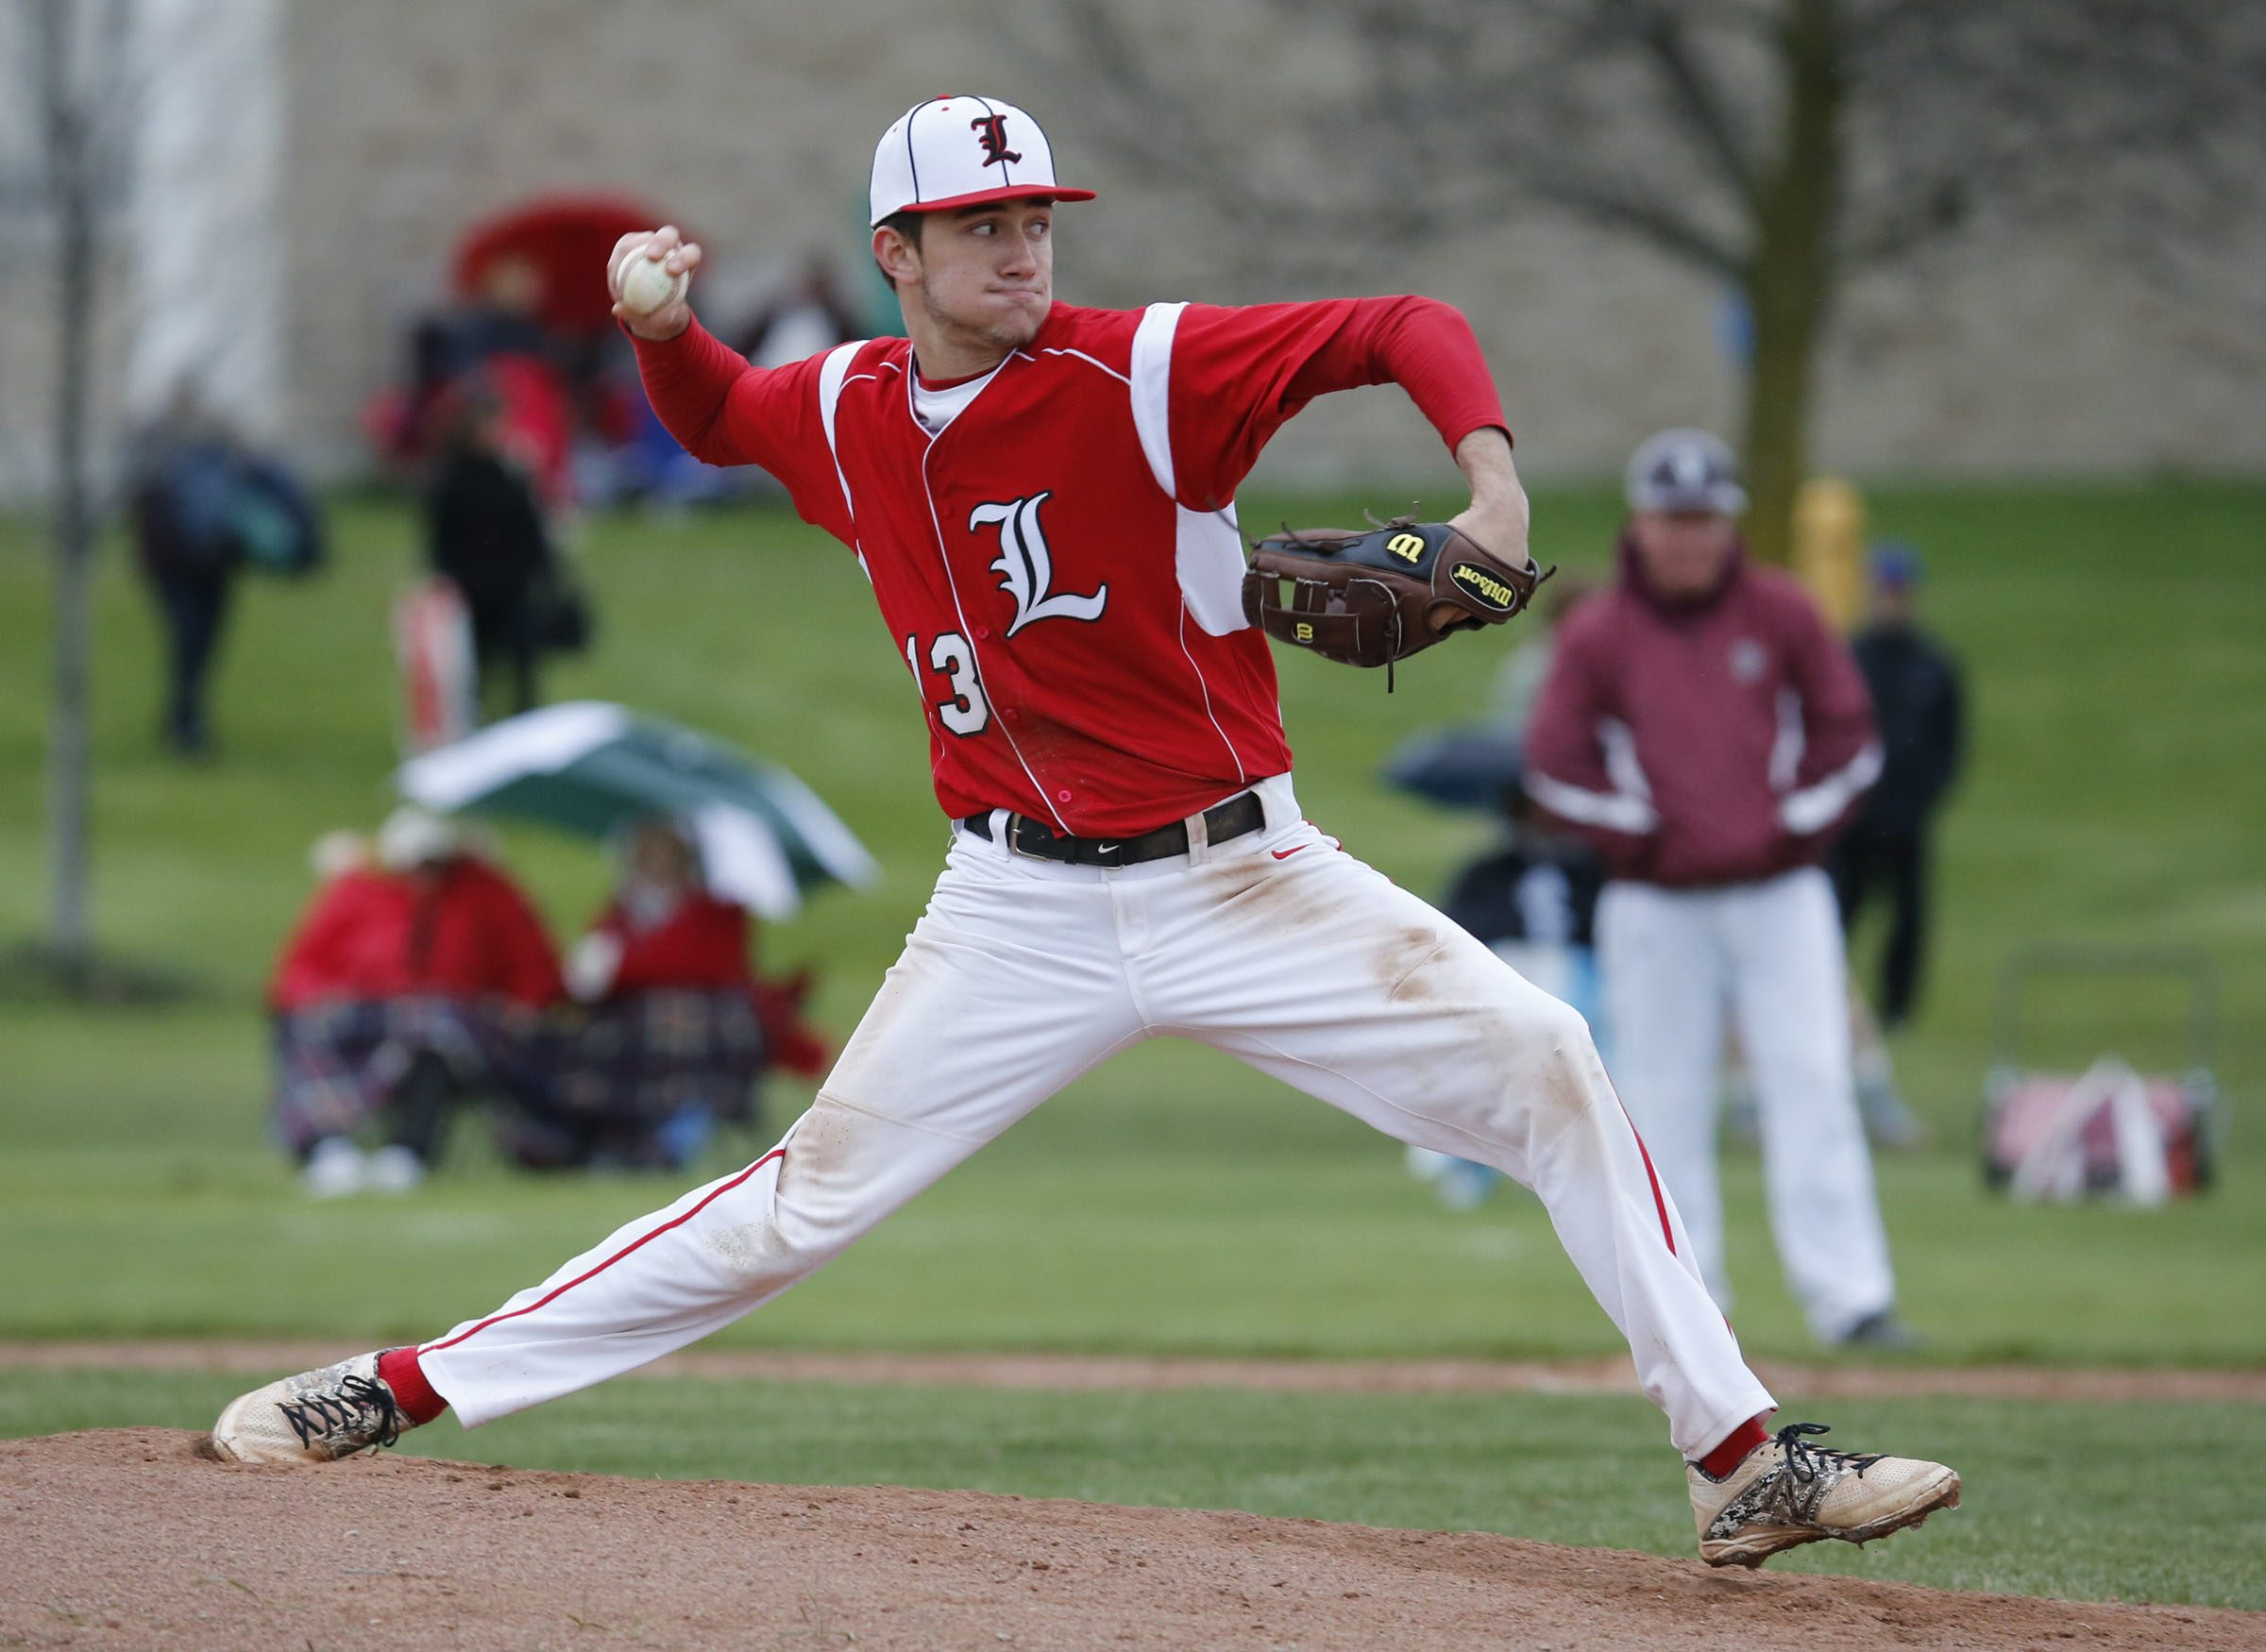 Lancaster pitcher Max Giordano helped the Legends win the Section VI Class AA title last season. (Harry Scull Jr./Buffalo News file photo)